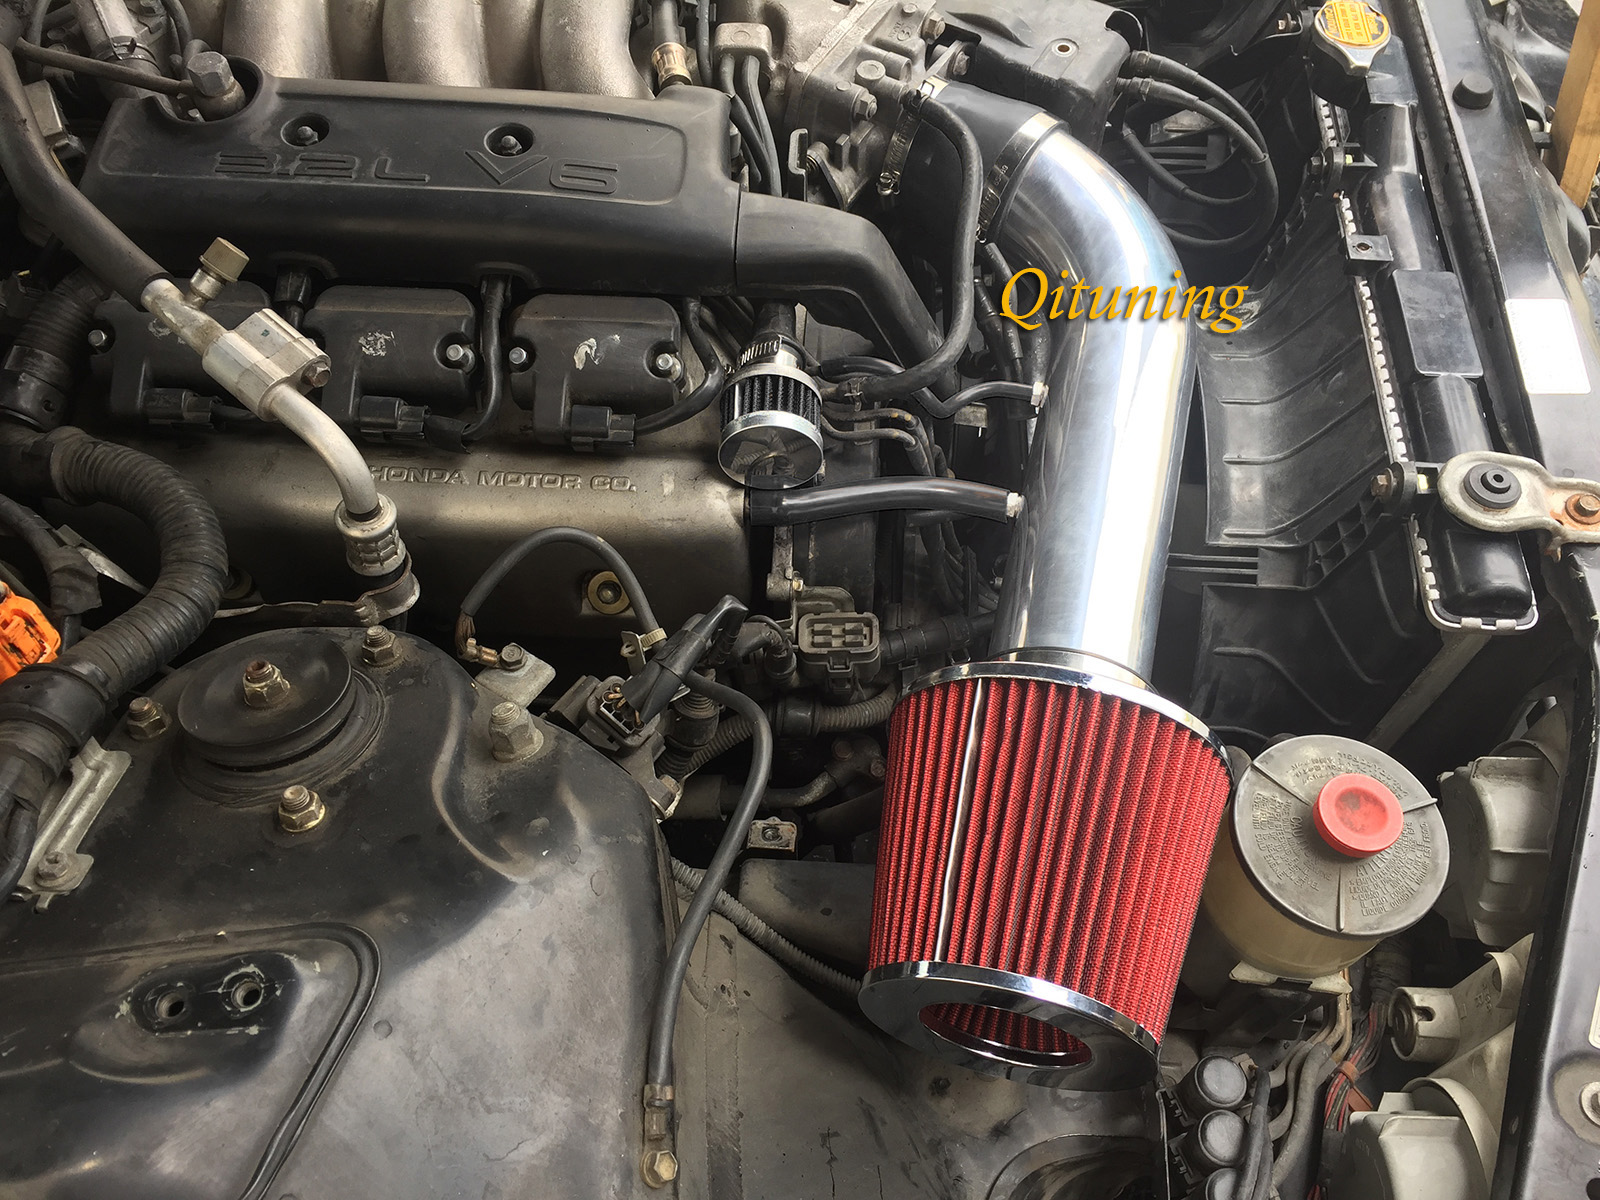 Black Red For 1991-1995 Acura Legend 3.2L V6 Base L LS Air Intake w/o TCS